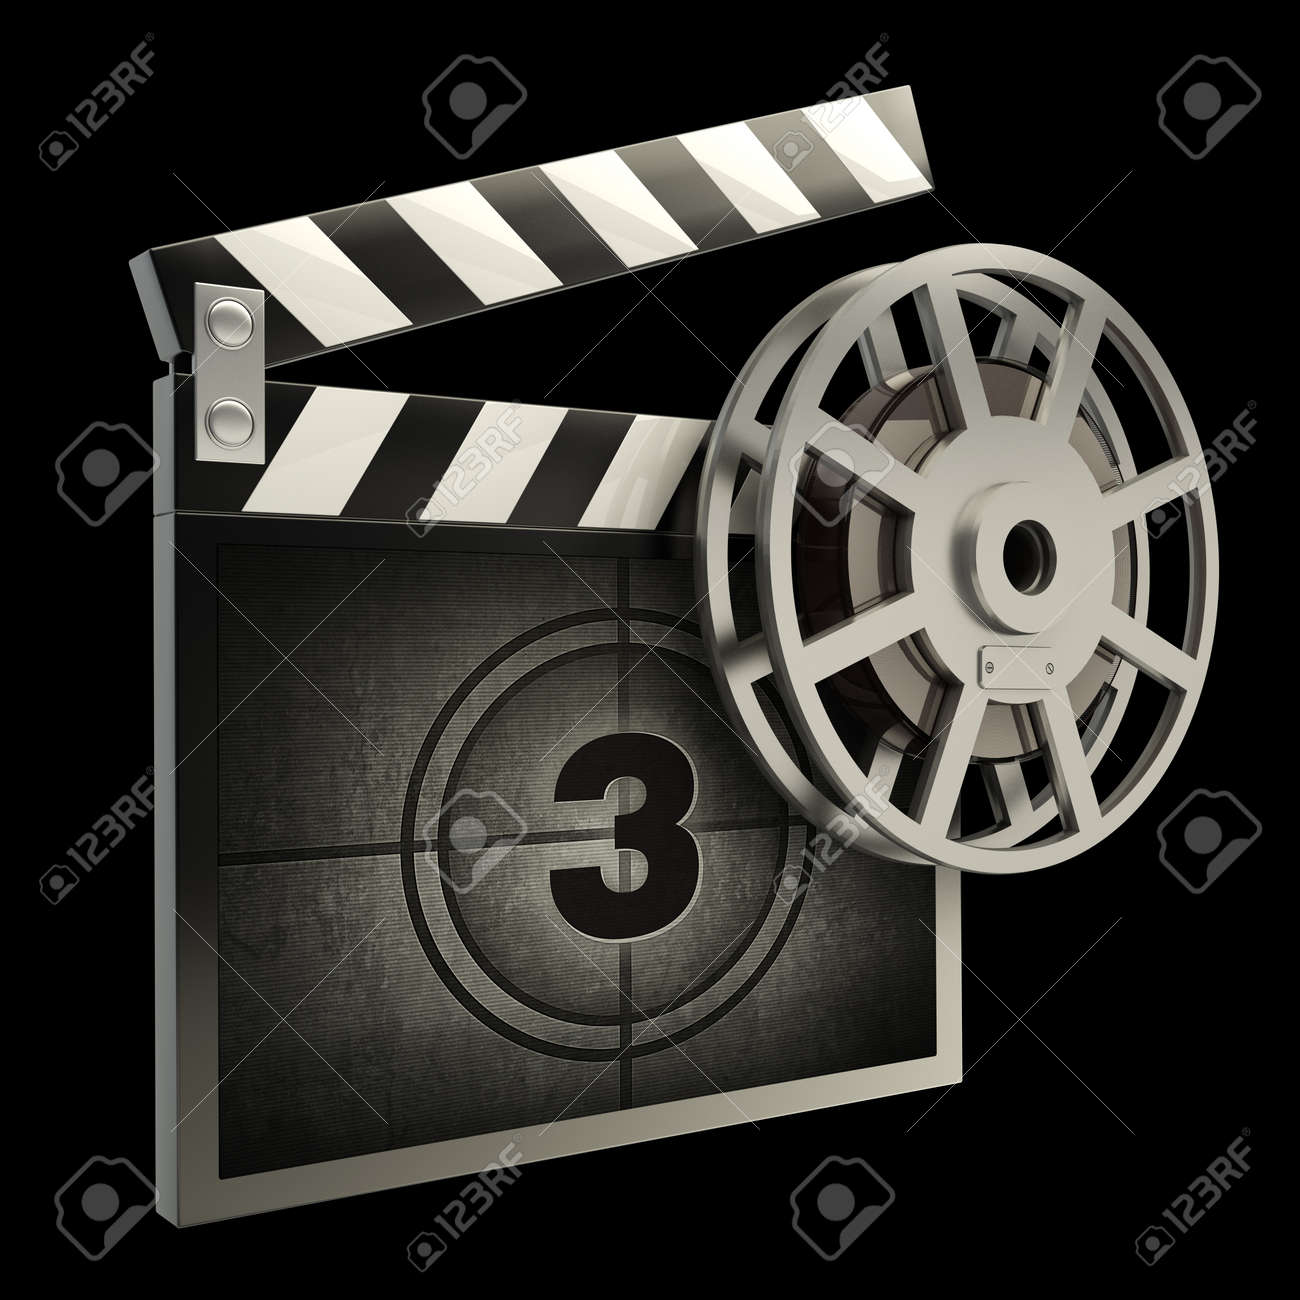 Film and clap board movies symbol closeup isolated on black  High resolution  3D image Stock Photo - 12981849